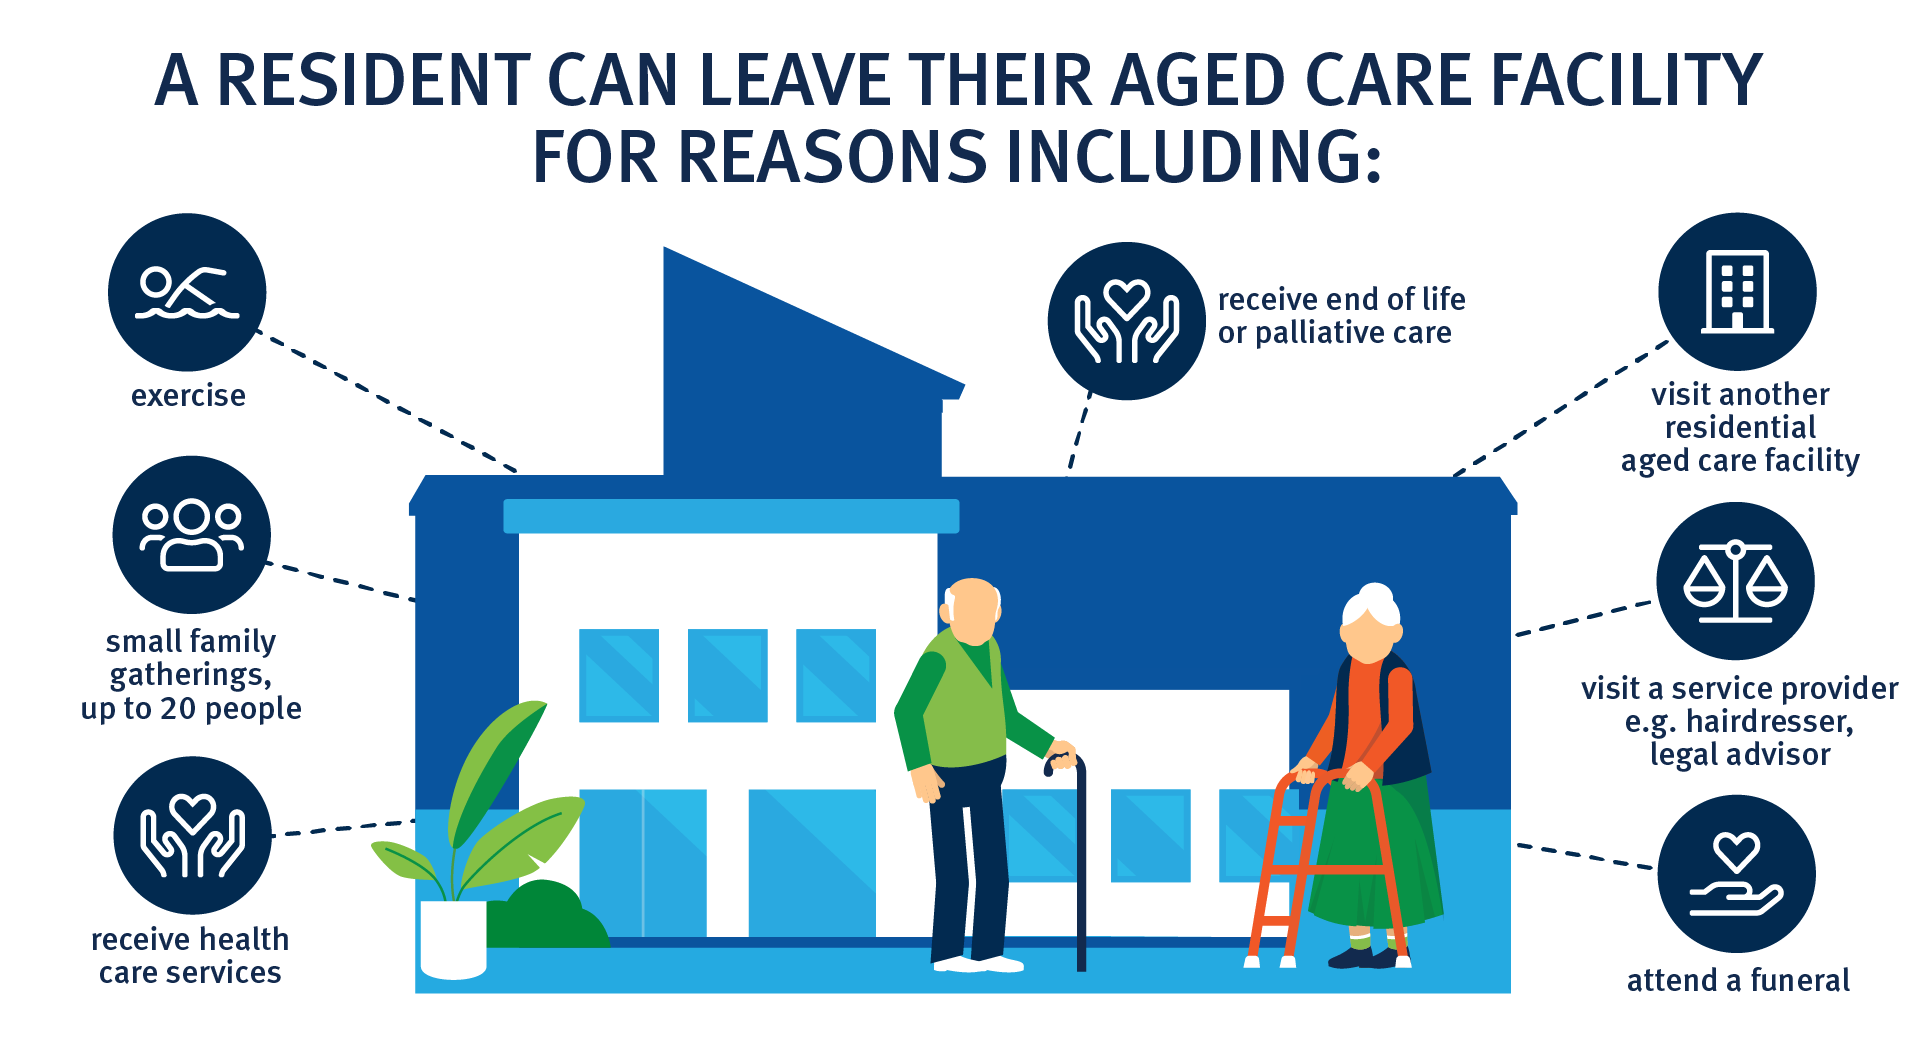 Who can visit a residential aged care facility? Family or support person, aged care staff, emergency workers and police, volunteers, health workers, a visitor who is providing end of life support